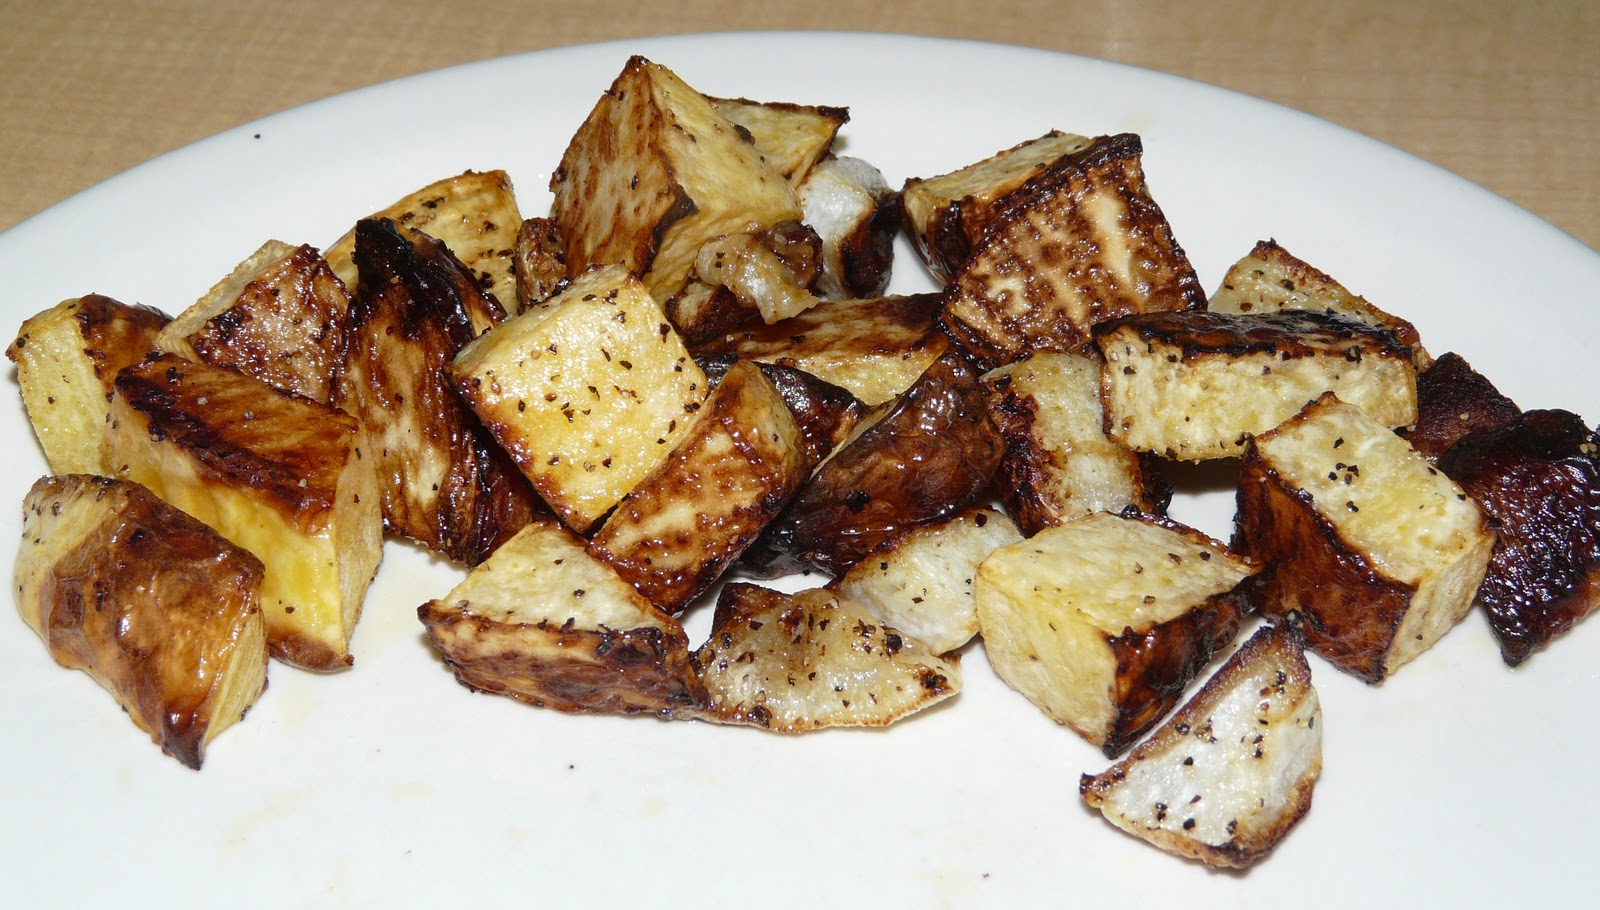 Moggy's Low Carb Kitchen: Roasted Rutabaga and Turnip Home Fries